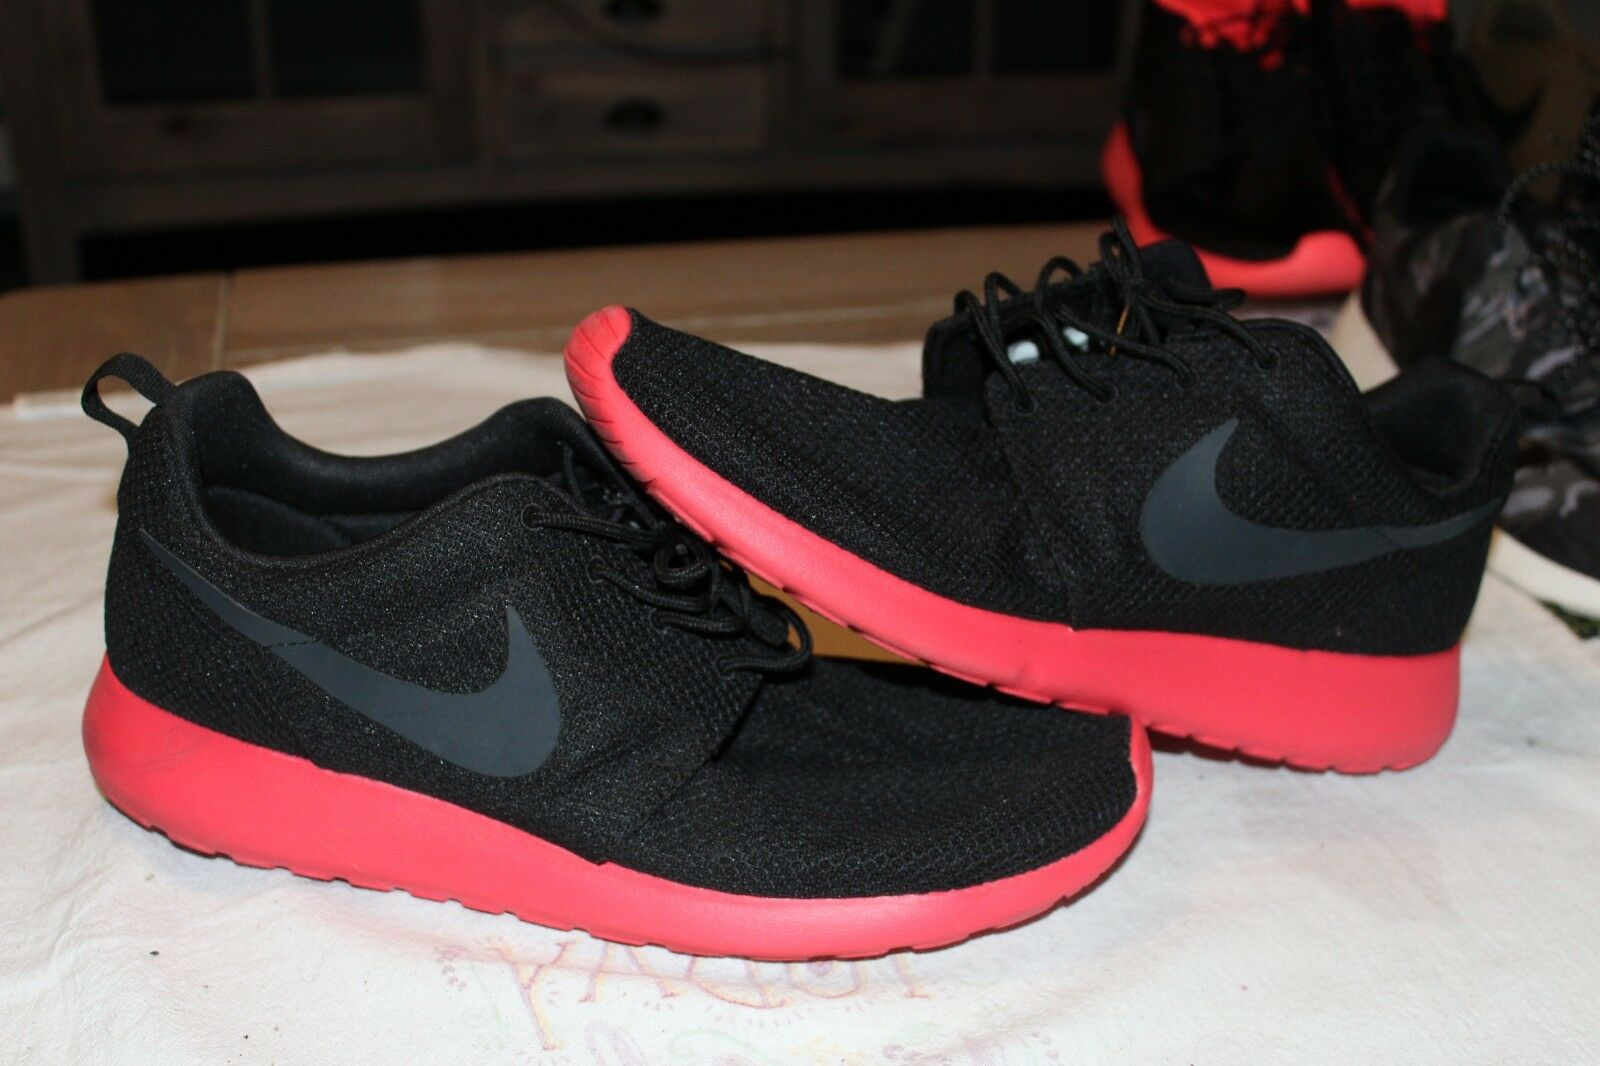 Nike Rosherun Roshe Run Siren Red Air Max